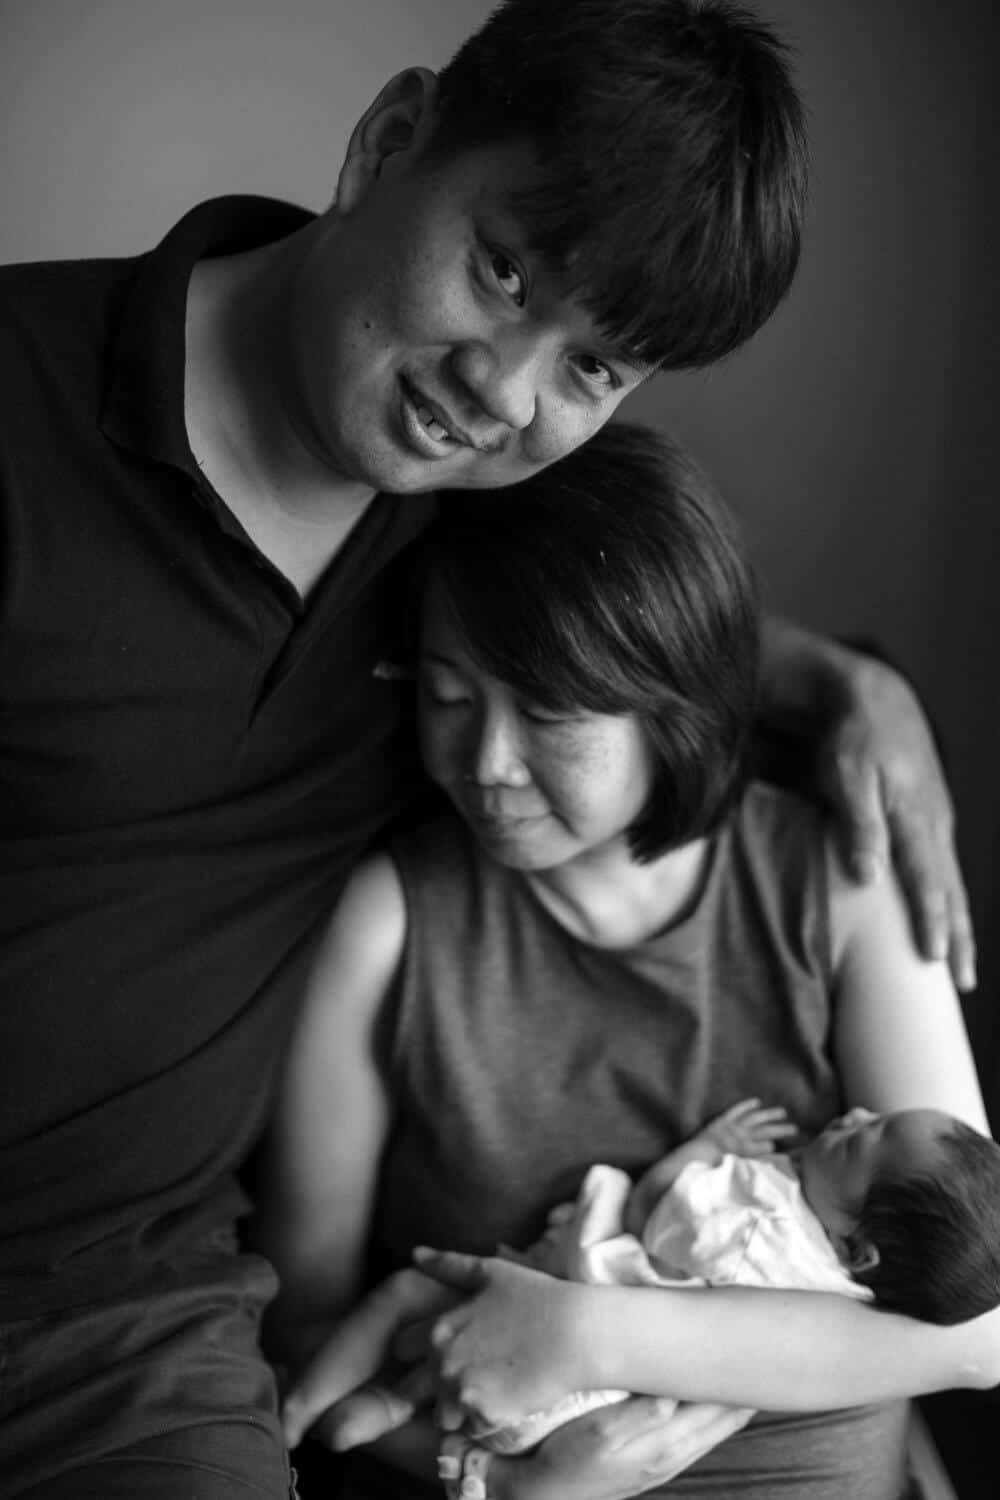 Kuala Lumpur New born baby portrait love mother Photographer Cliff Choong Photography Malaysia